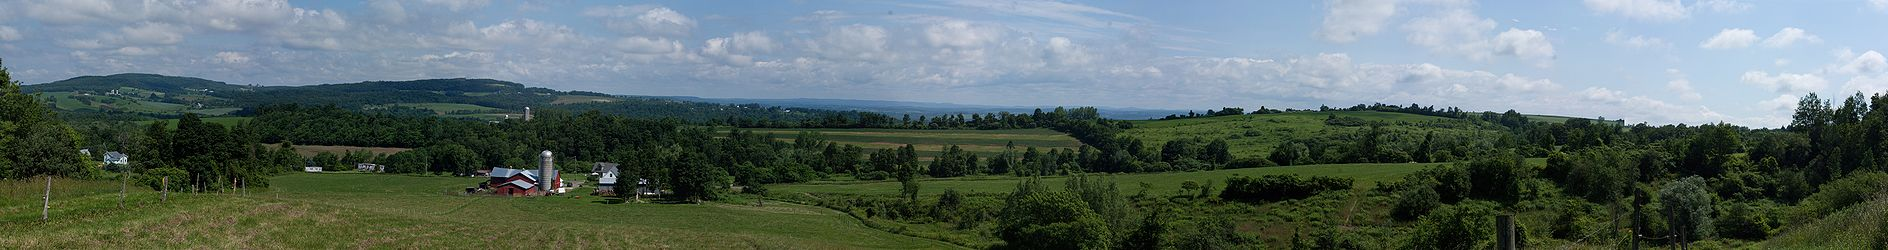 Southeast Herkimer County, New York panoramic.jpg